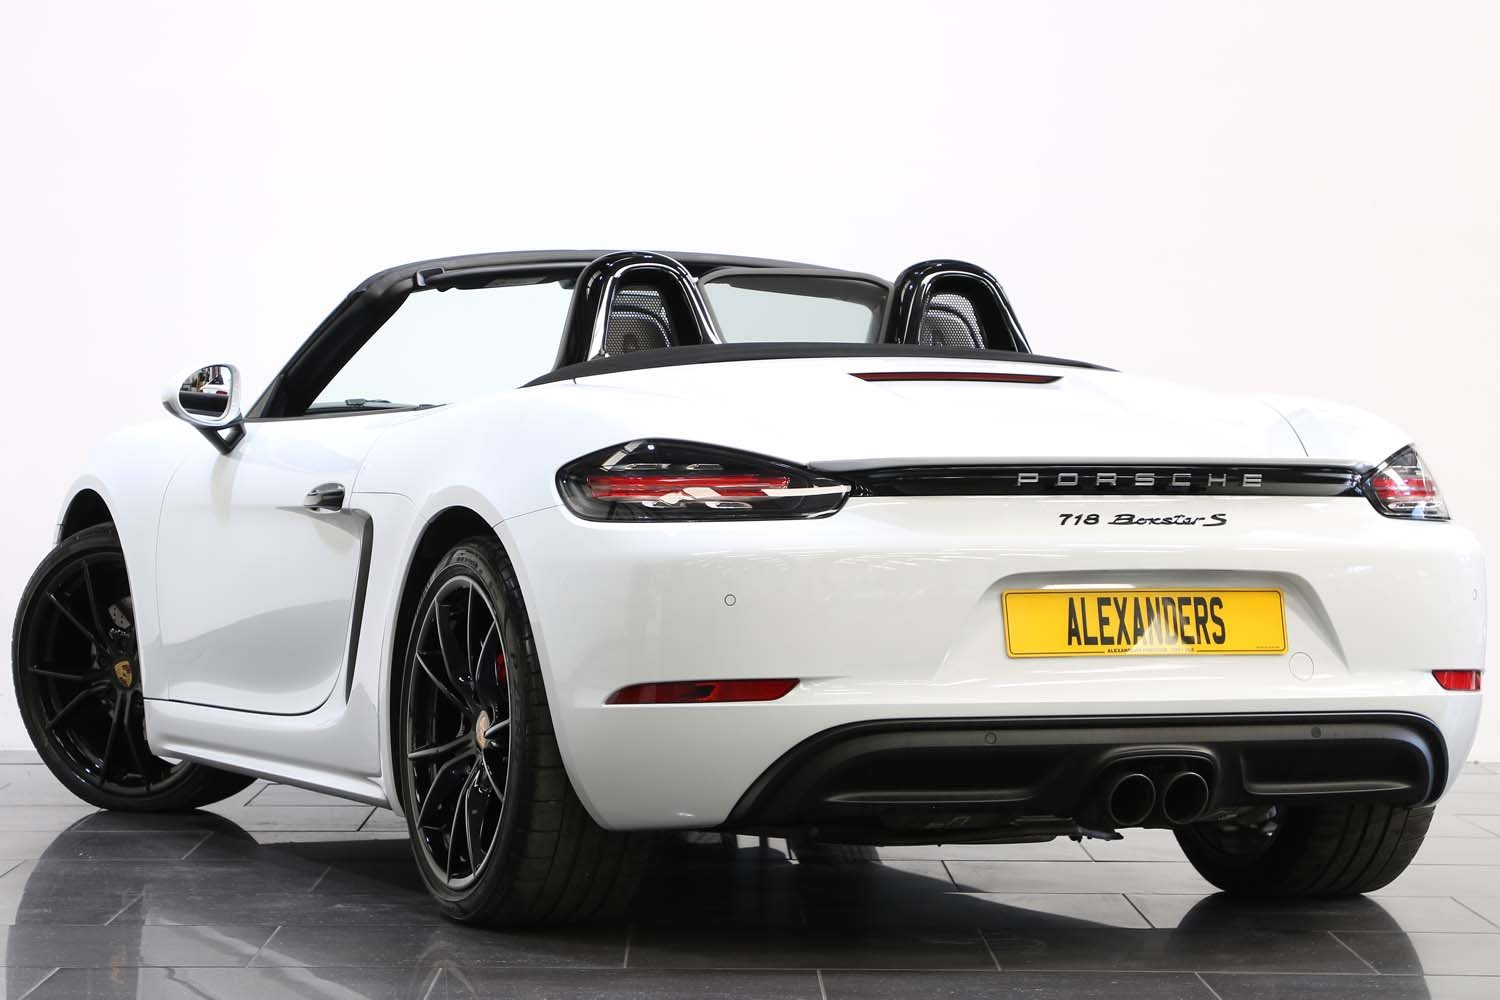 2018 PORSCHE 718 BOXSTER S 2.5 PDK  For Sale (picture 3 of 6)